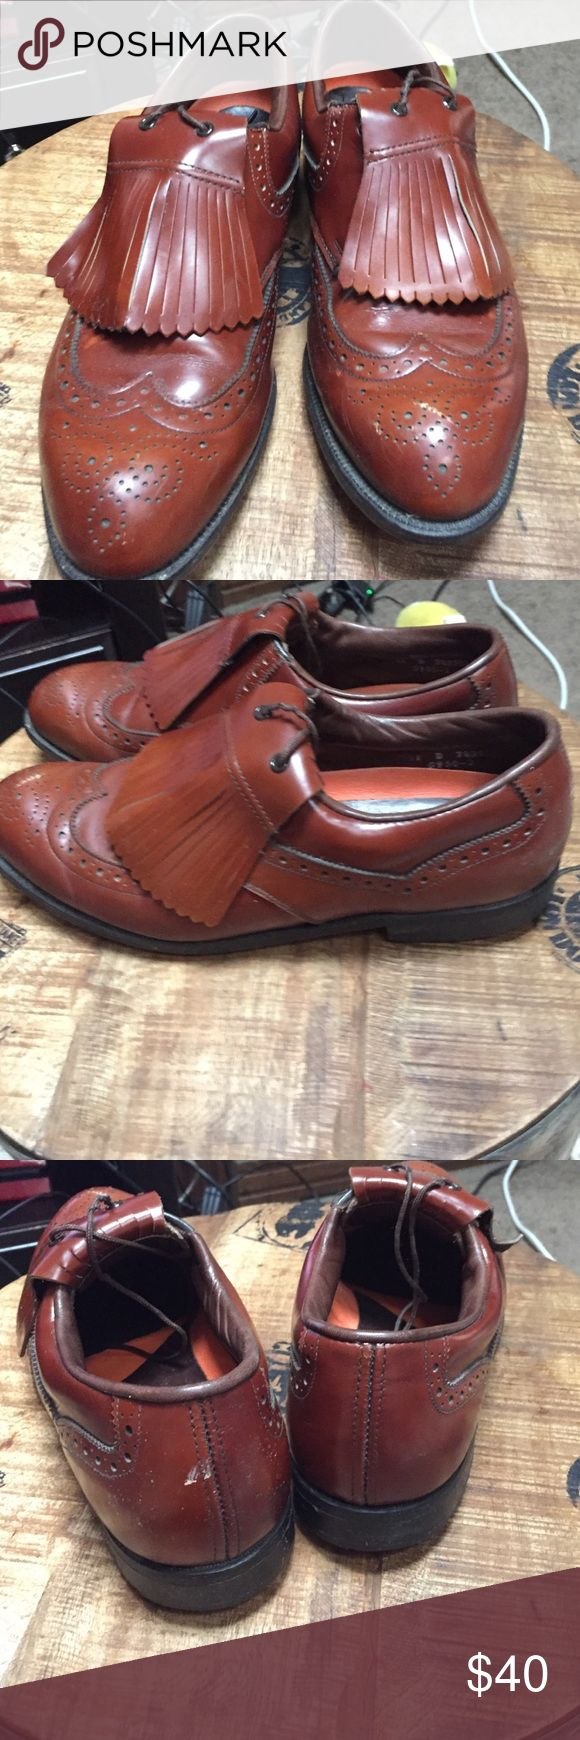 Dexter golf shoes Up for sale is a used pair of dexter golf shoes used a couple of times in great condition dexter Shoes Athletic Shoes